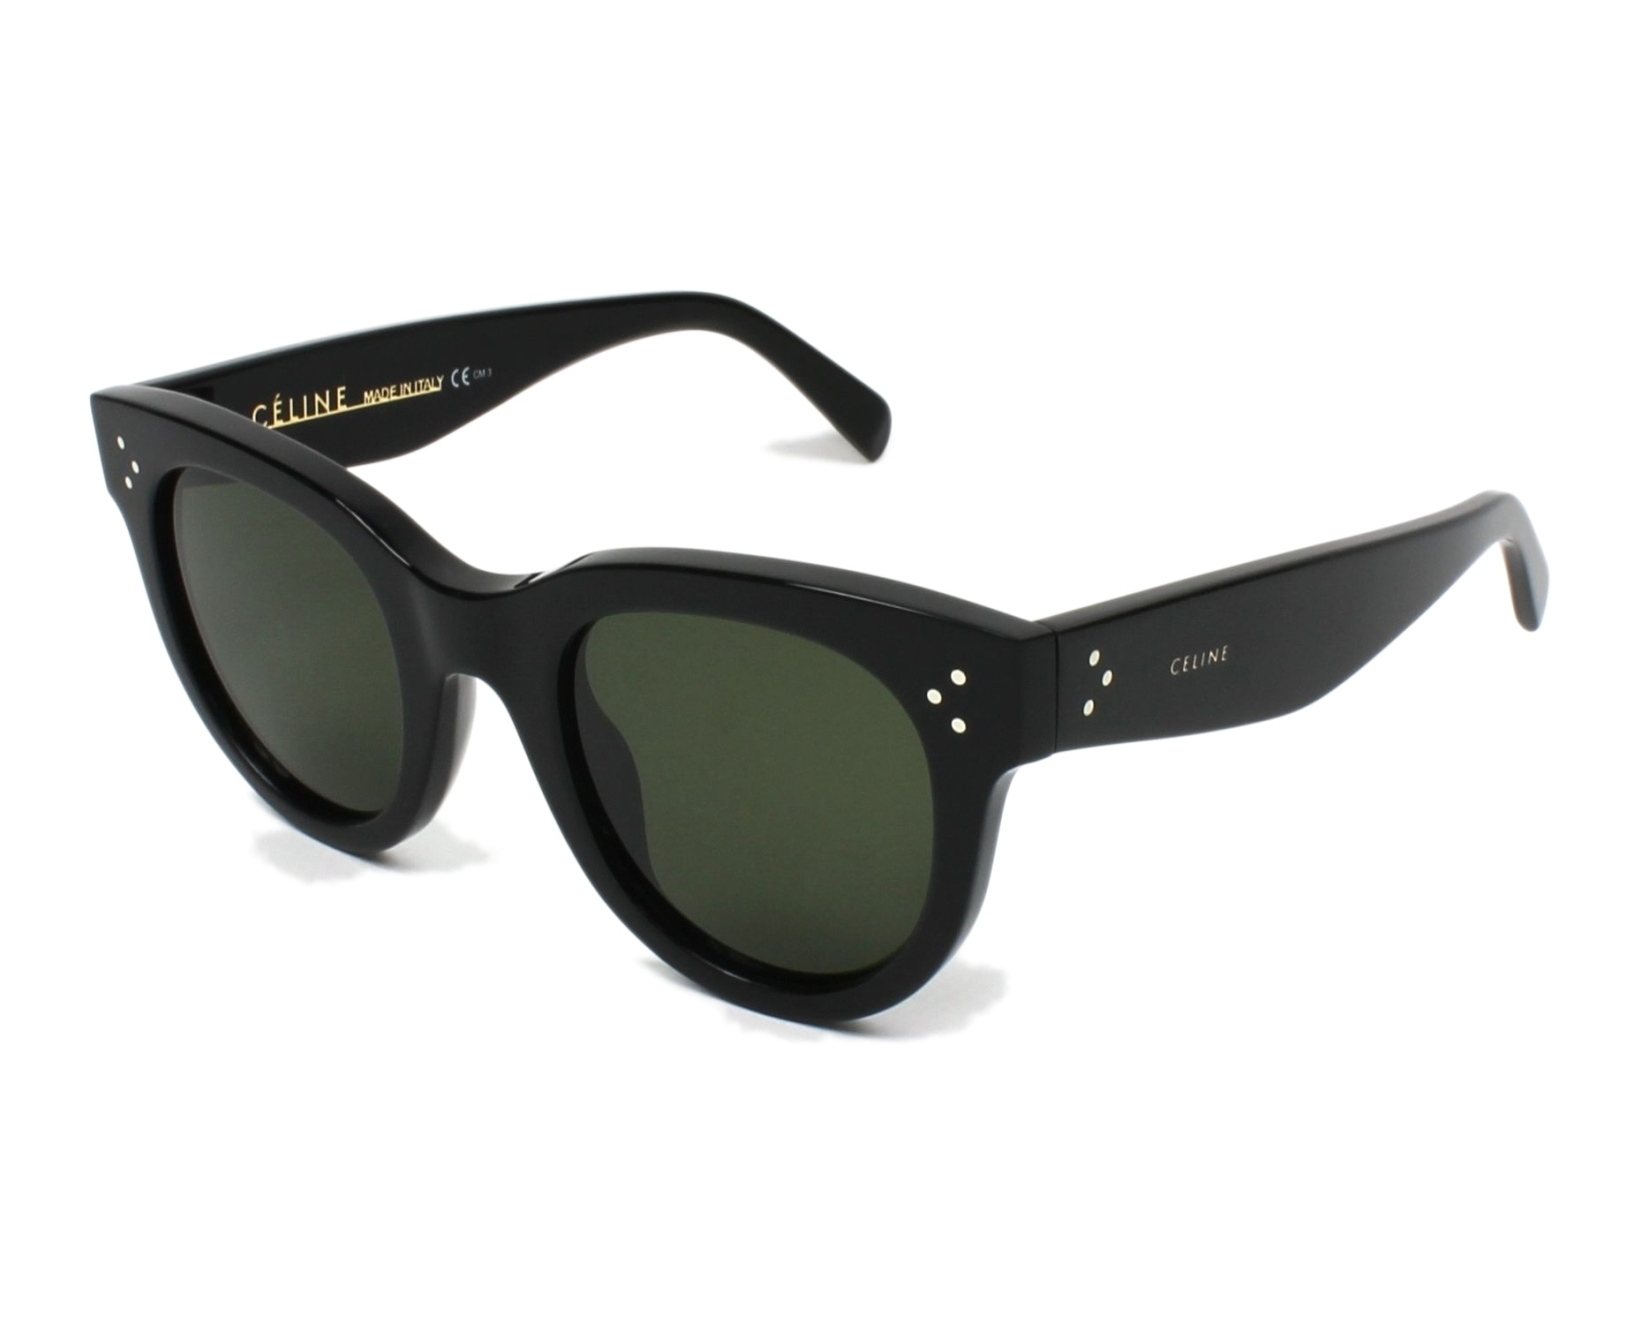 ca85b71e6bb thumbnail Sunglasses Céline CL-41053-S 807 1E - Black profile view